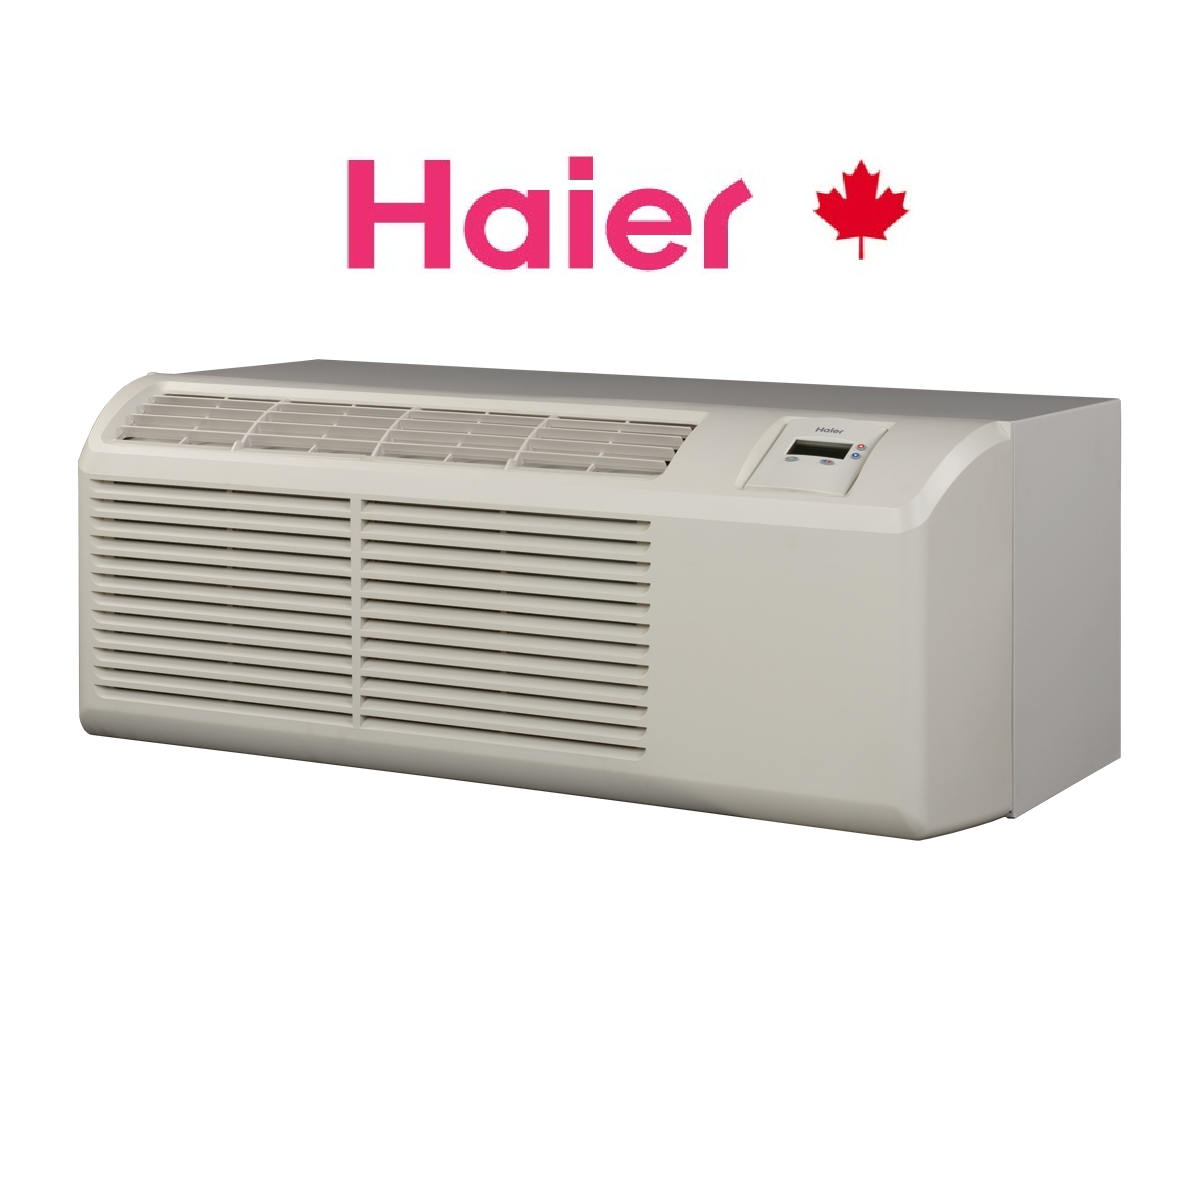 HAIER PTAC UNITS PTHH1201UAC HEAT PUMPCOOLING AND HEATING #C80320